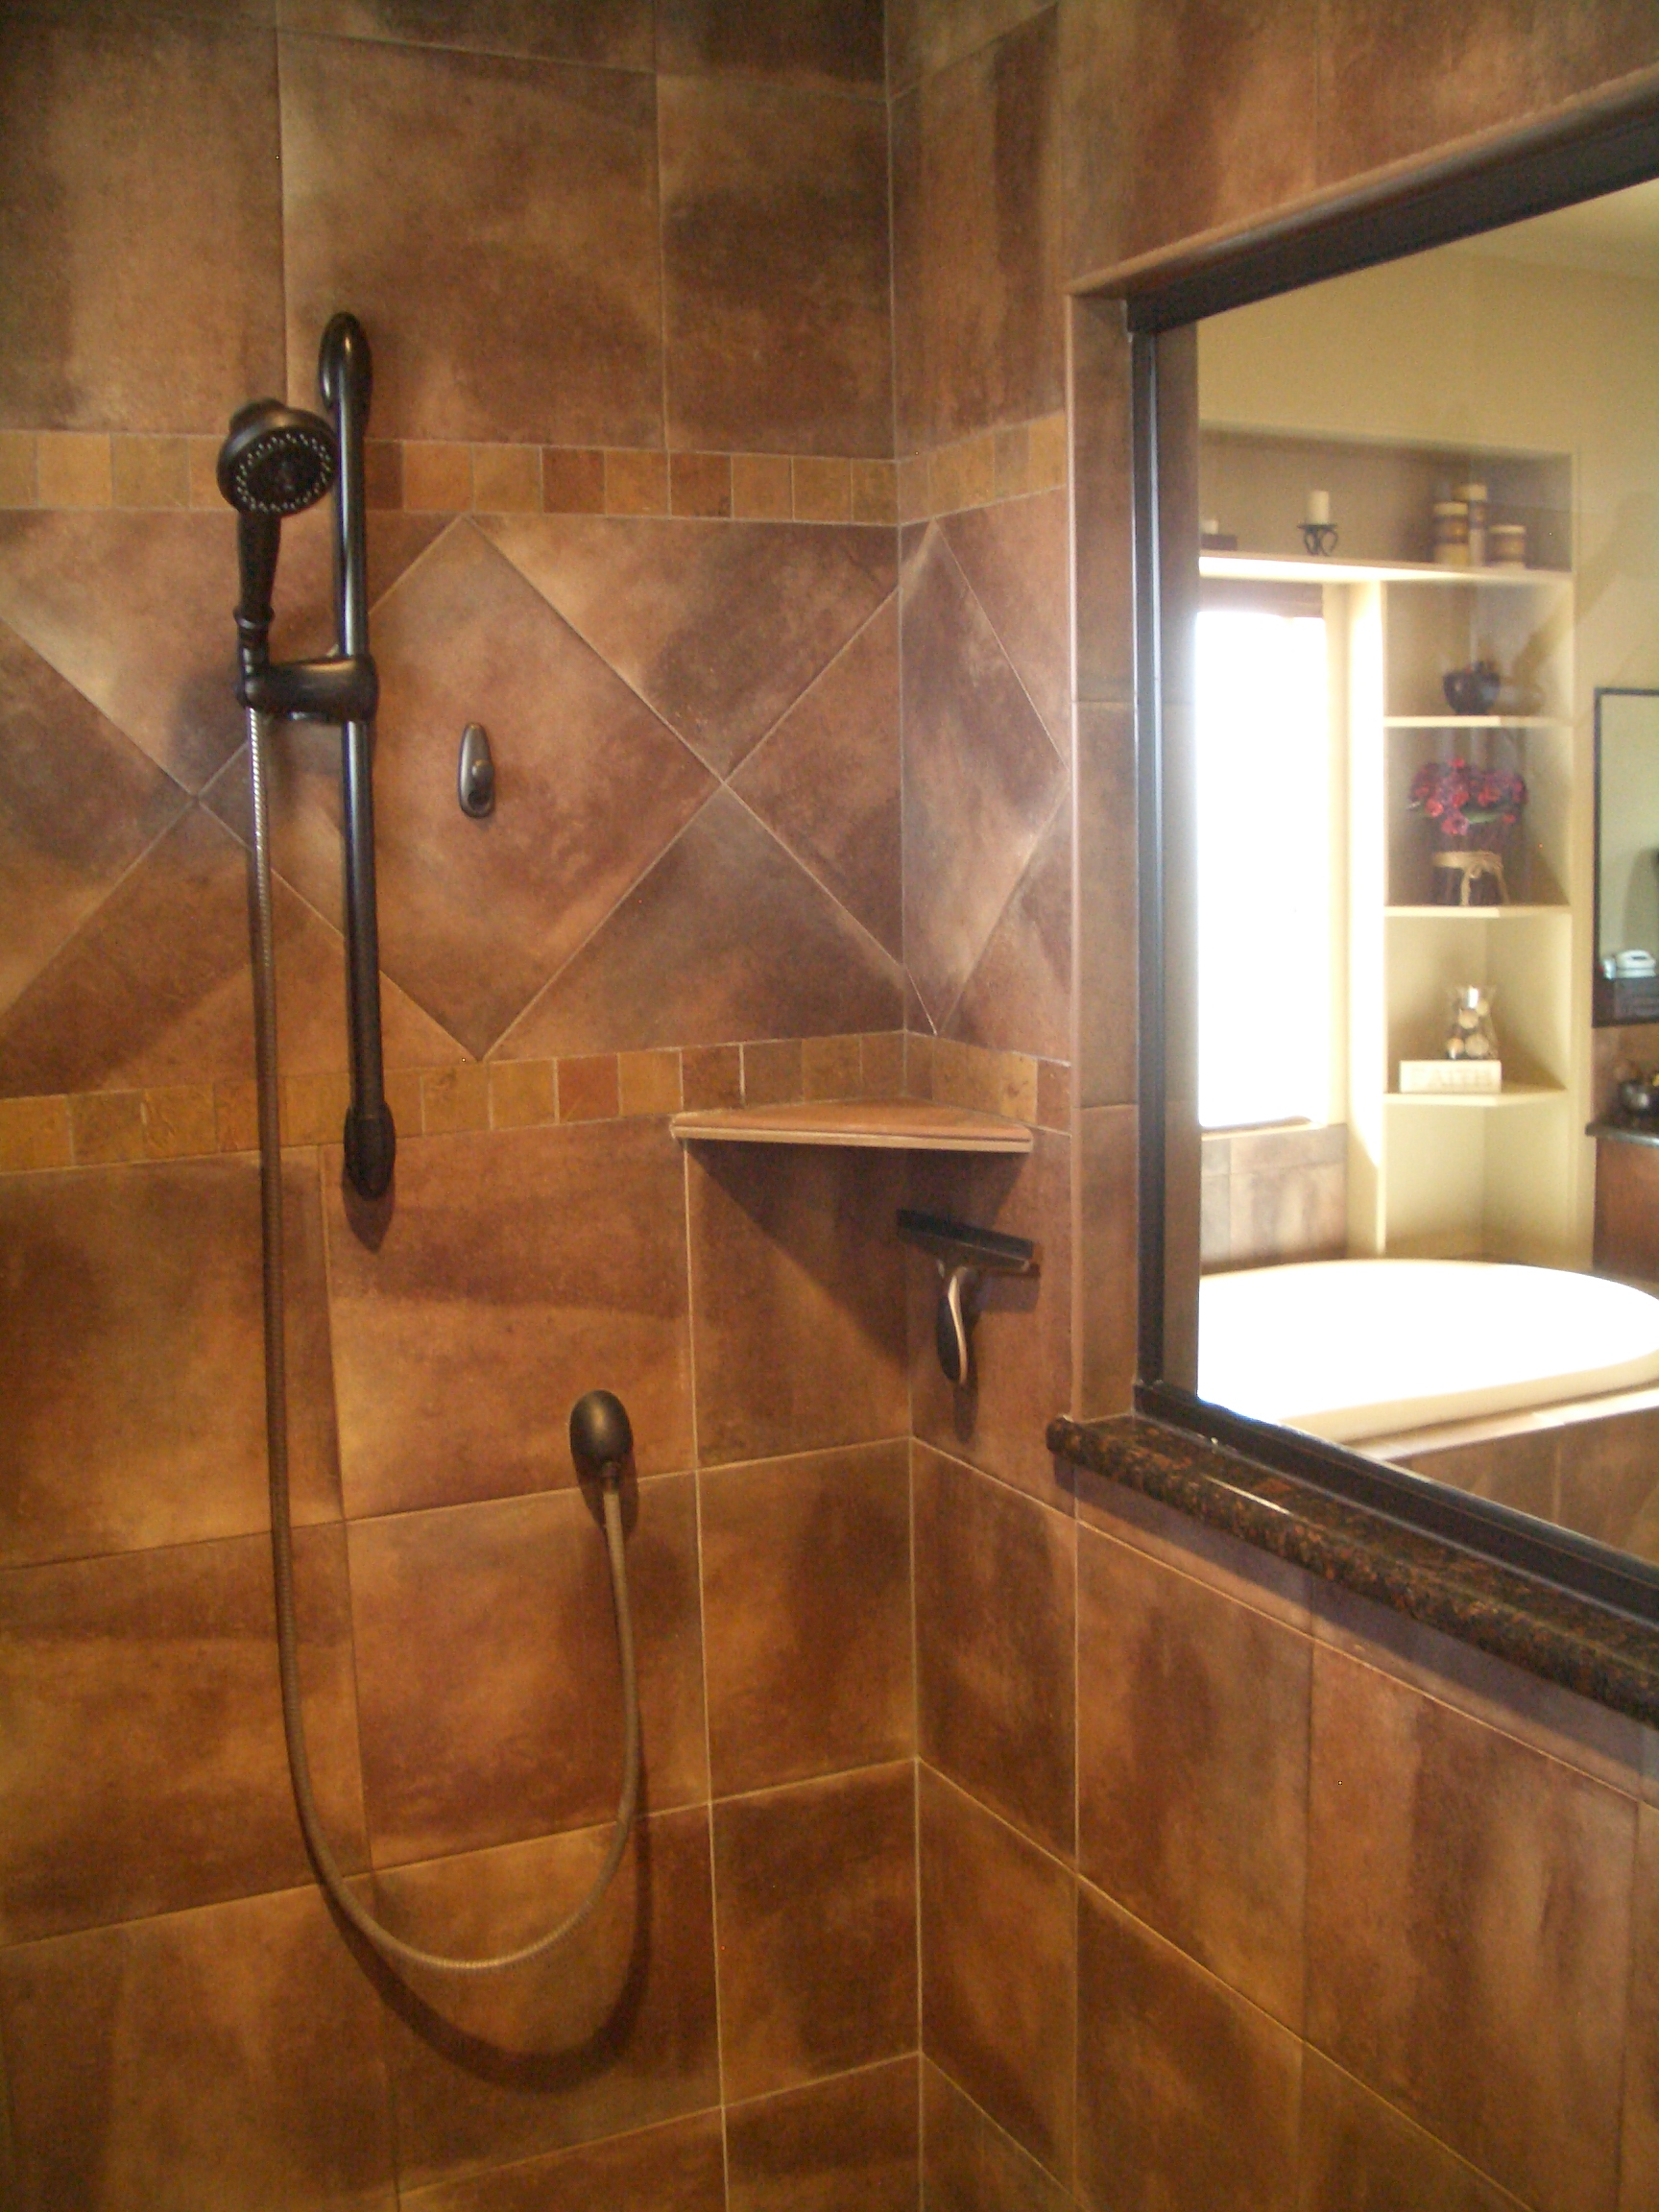 m-recommendation-how-to-build-a-tile-shower-shelf-how-to-build-a-tile-shower-floor-how-to-build-a-tile-shower-from-start-to-finish-how-to-build-a-tile-shower-from-scratch-how-to-build-a-til